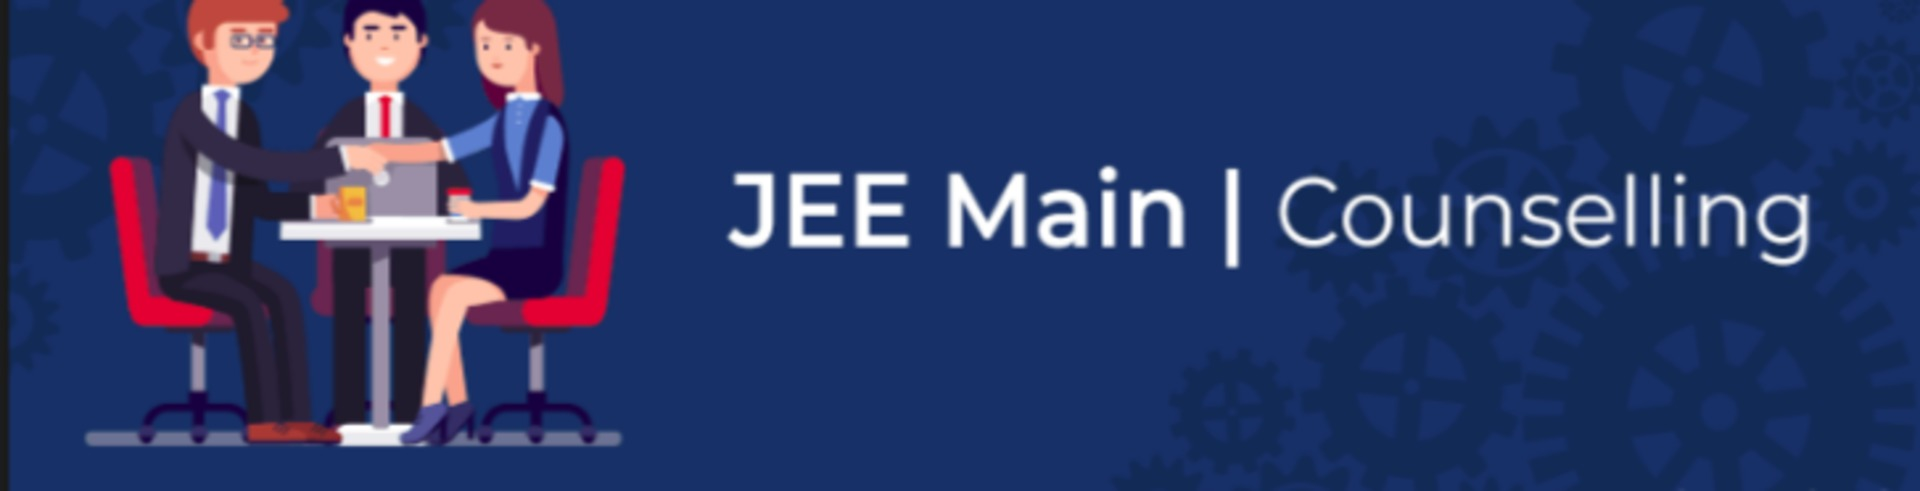 JEE Main Counselling 2020 image